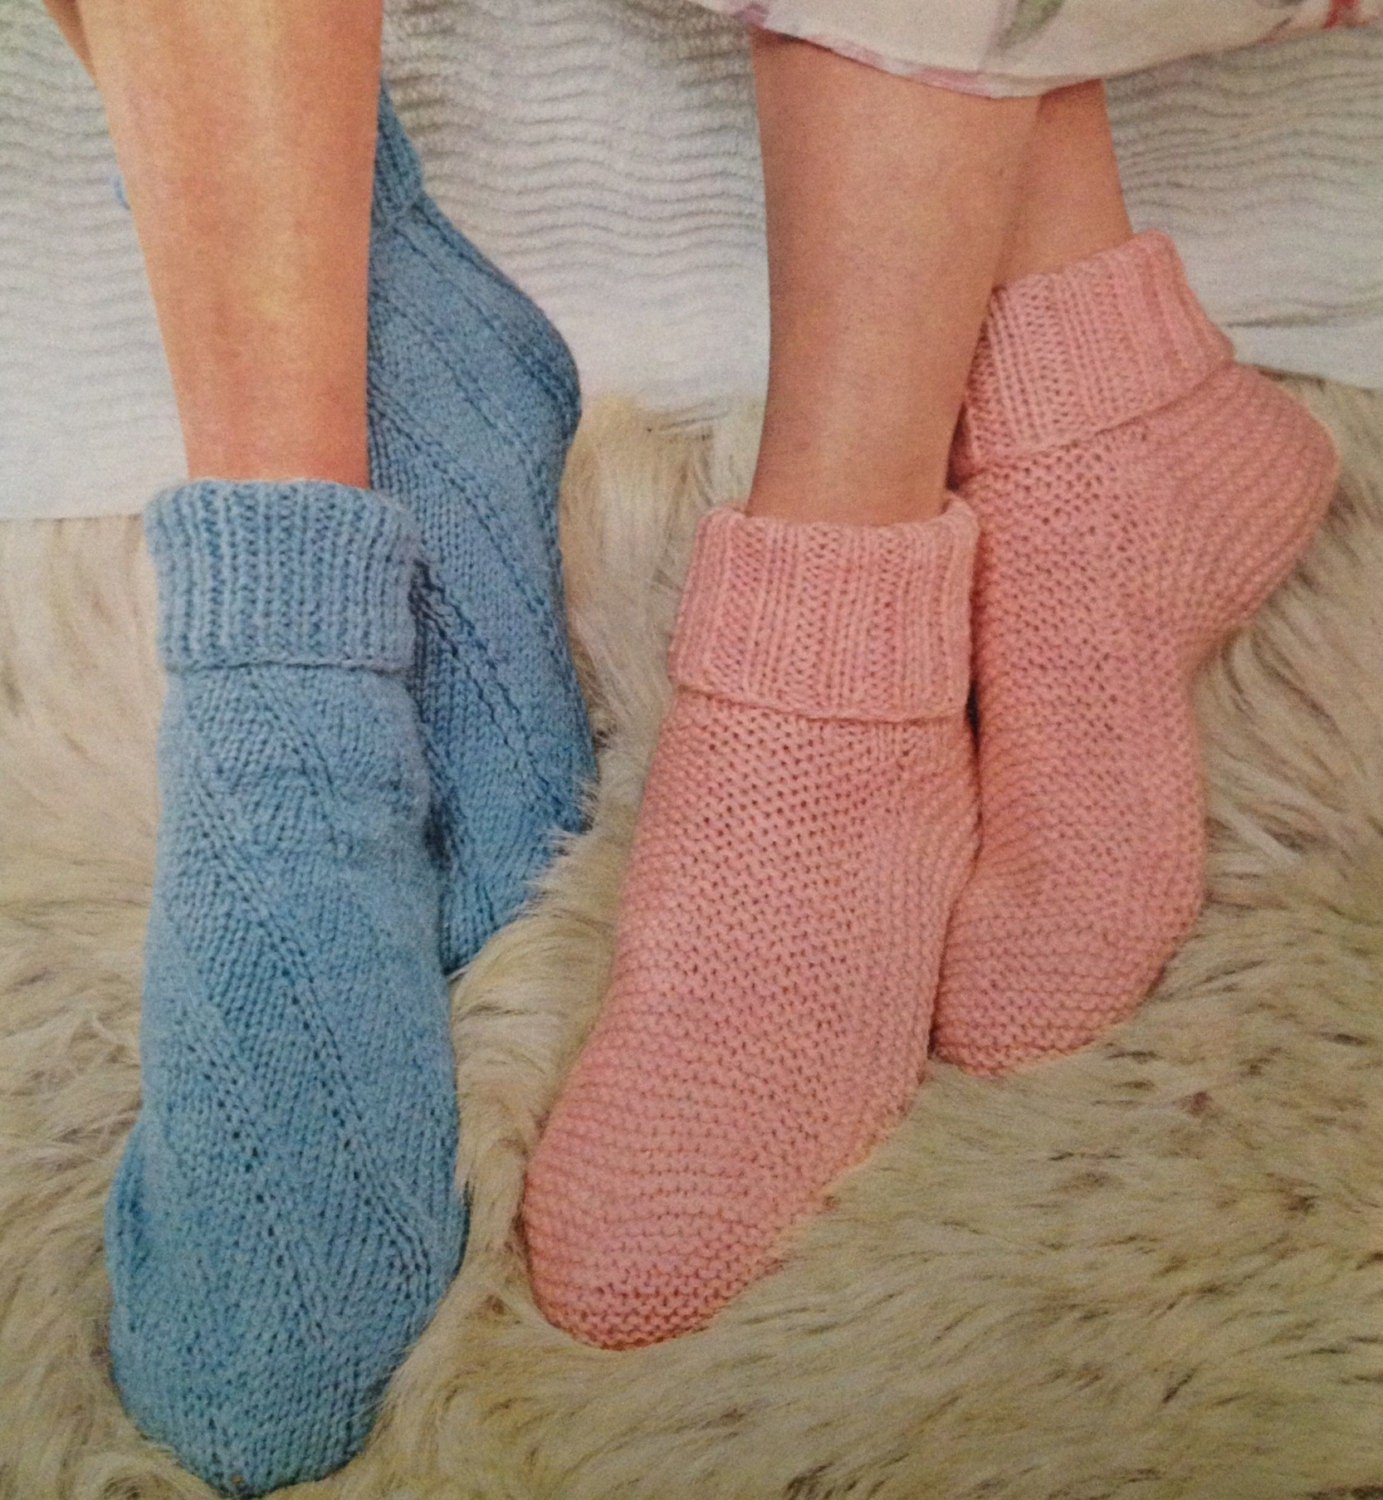 Bed Socks Knitting Pattern 2 Needles : vintage knitting pattern for ladies bed socks in double knit